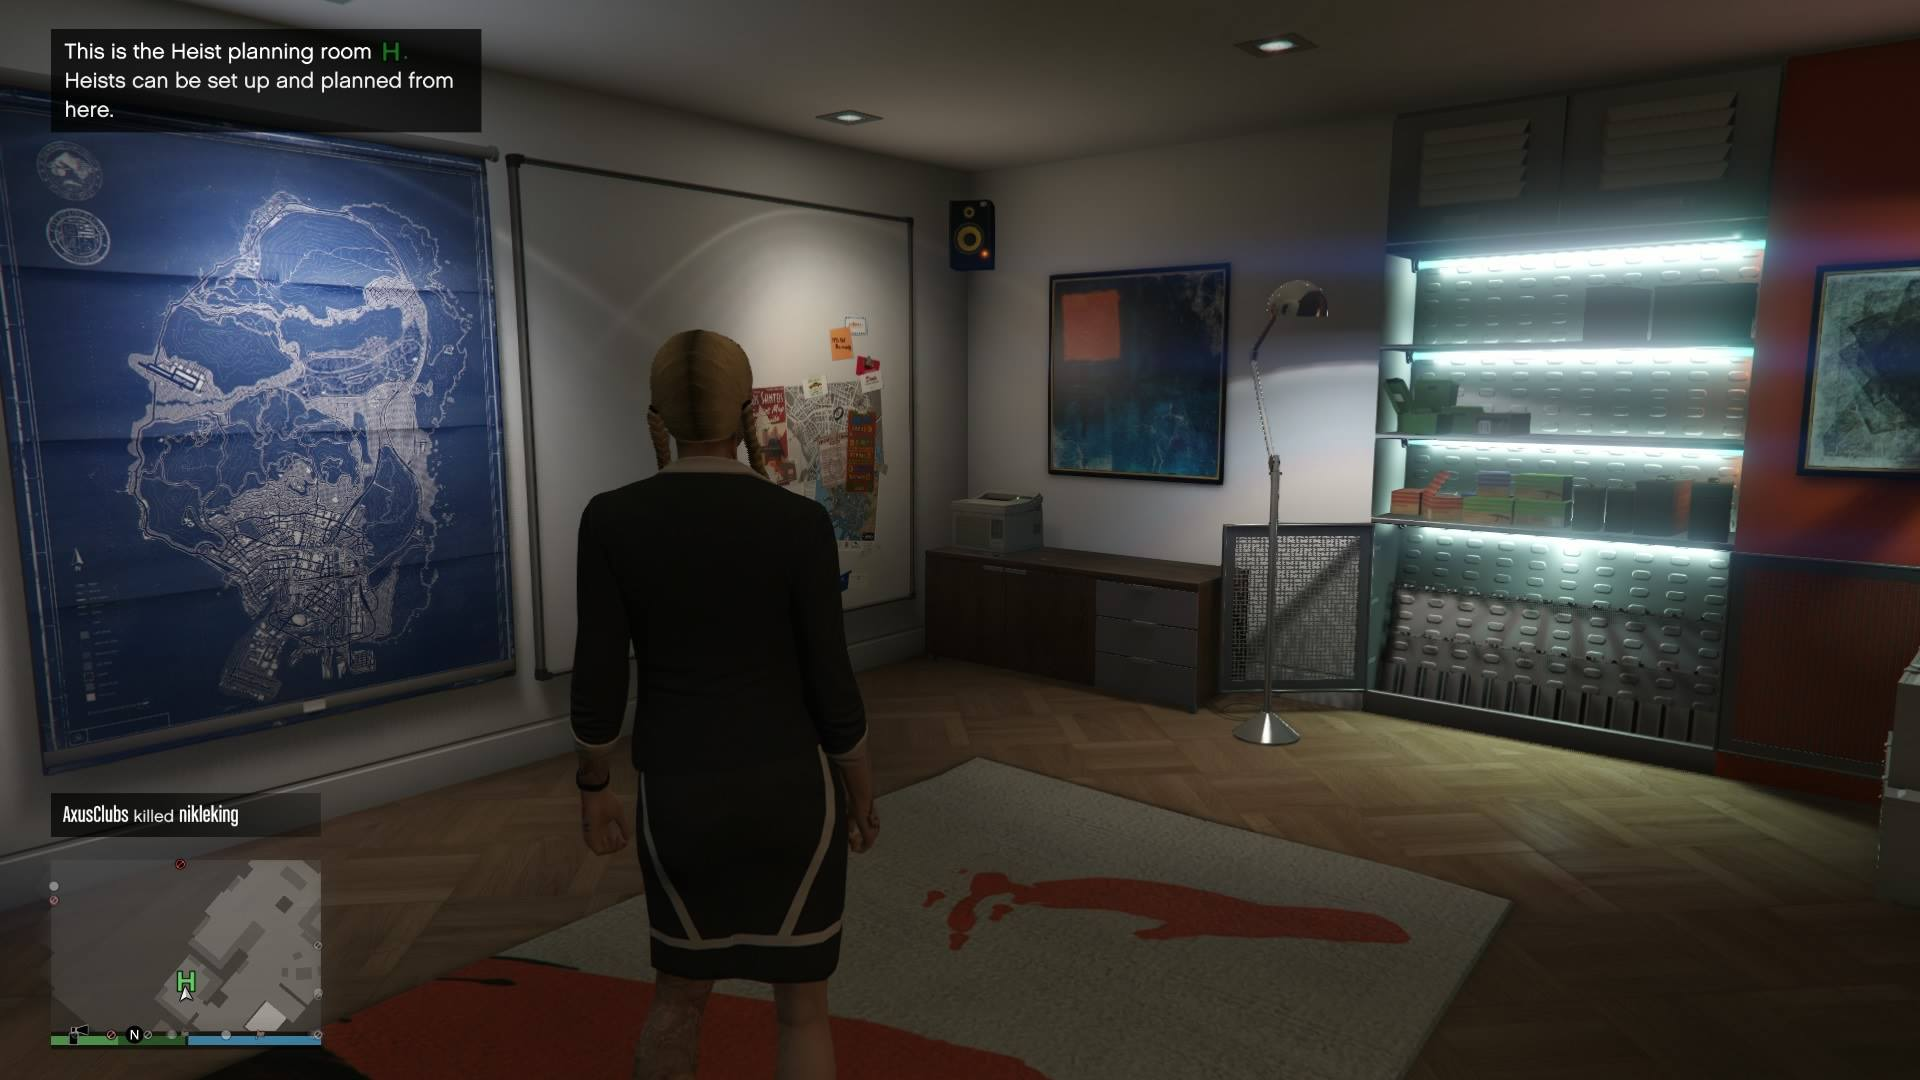 Gta 5 online heists guide the fleeca job vg247 Room planner free